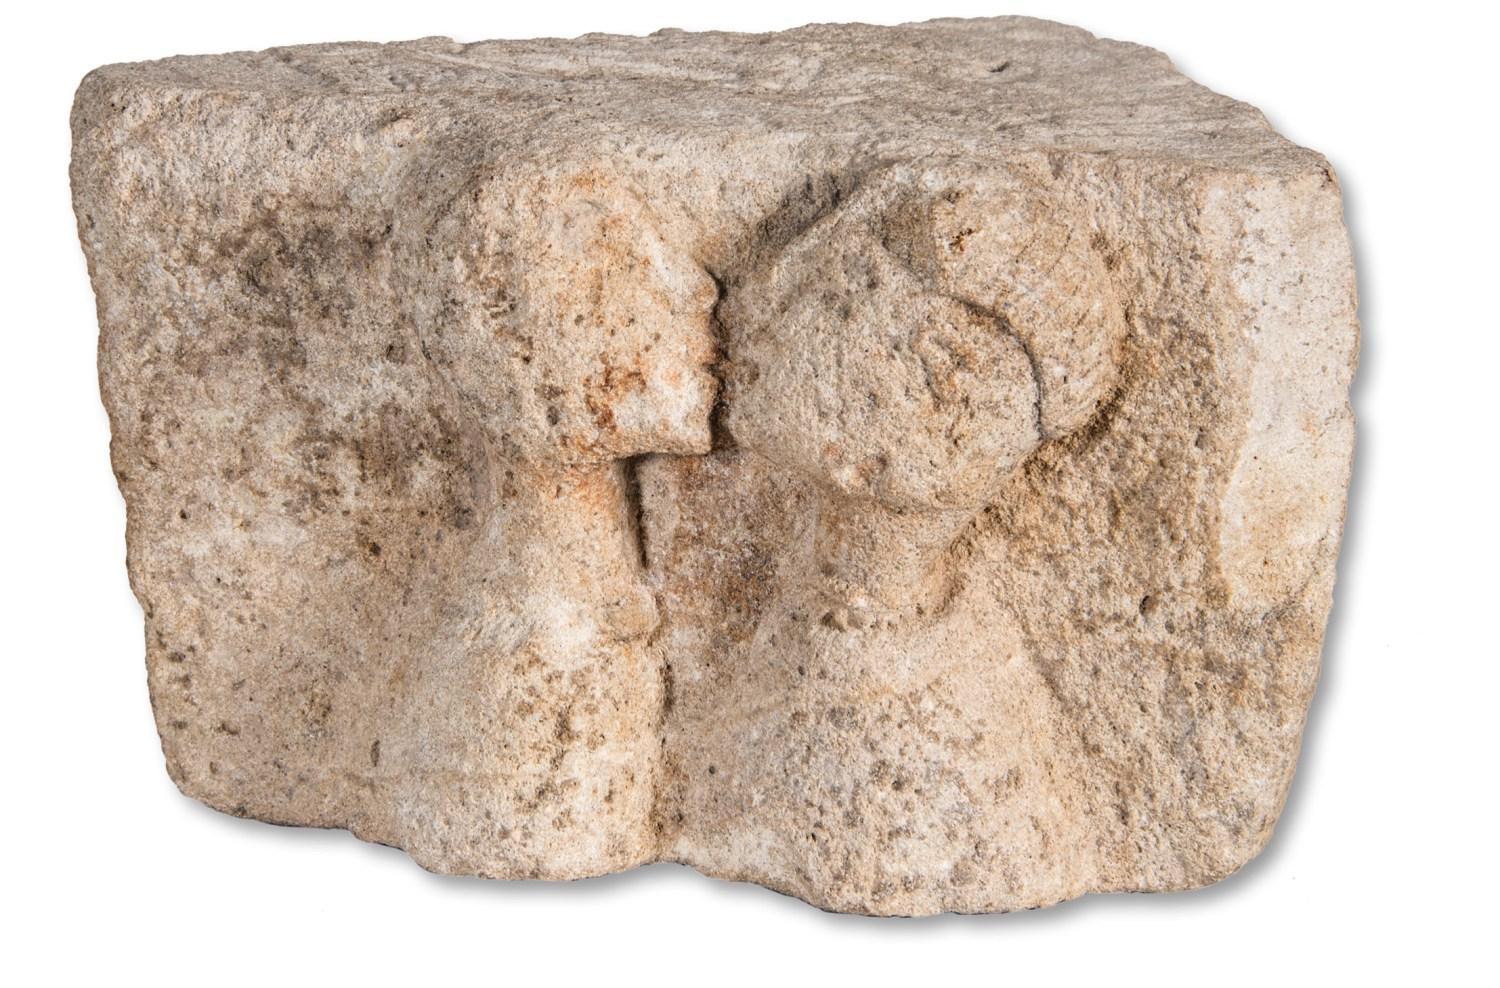 above The Kiss, from Osuna (Seville). 1st century BC, limestone. Size: 13.5 x 24 x 30cm opposite Pablo Picasso, Le Baiser ('The Kiss'). Dinard, 25 August 1929, oil on canvas. Size: 22 x 14cm